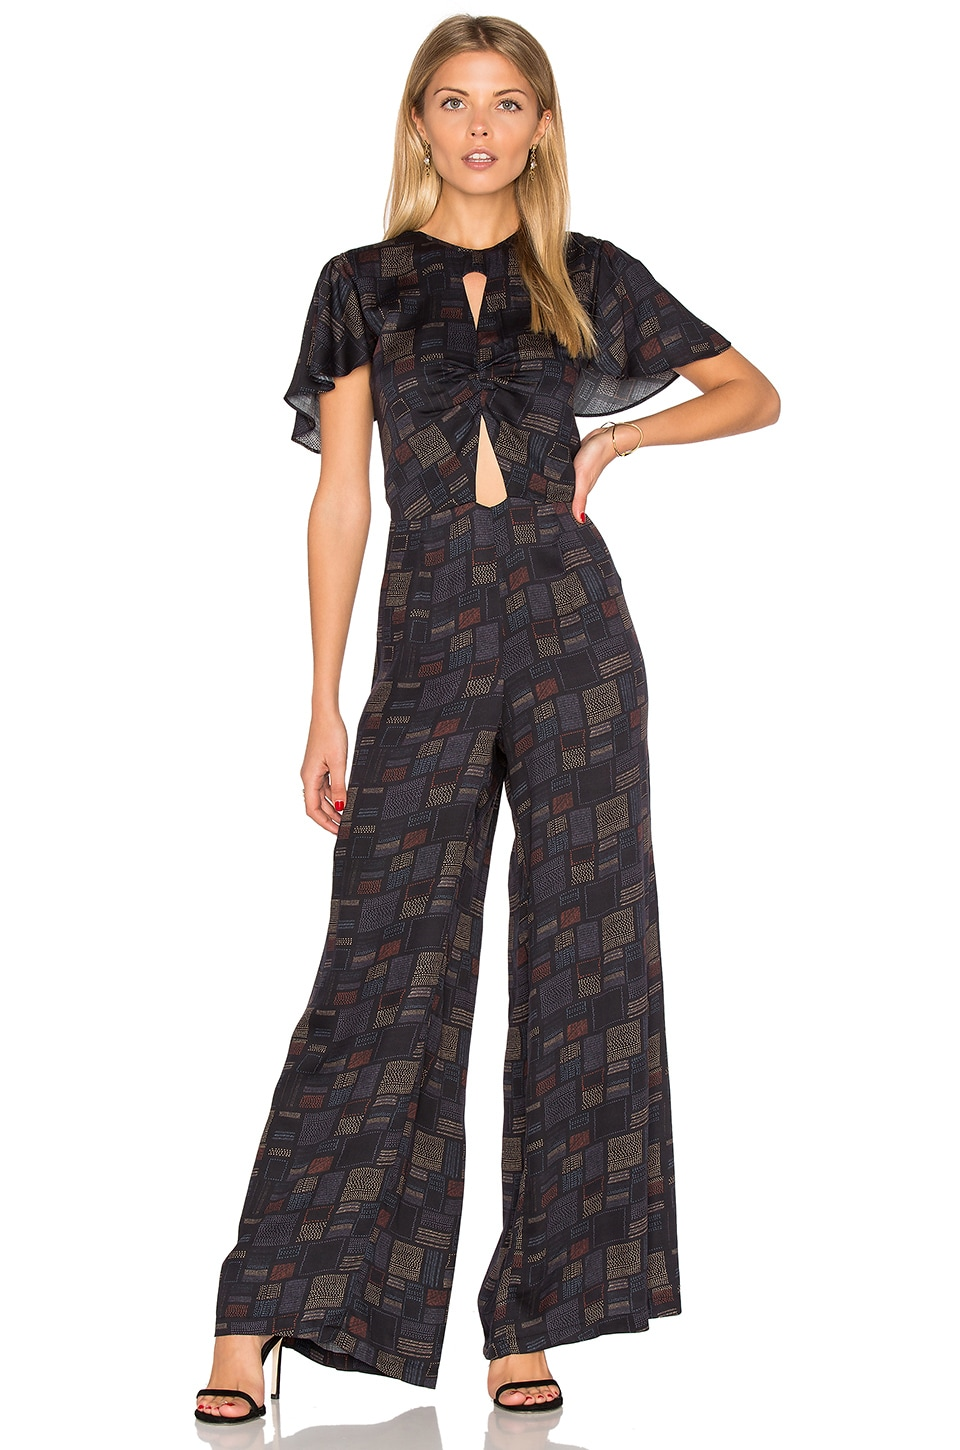 Katty Jumpsuit by Maria Stanley